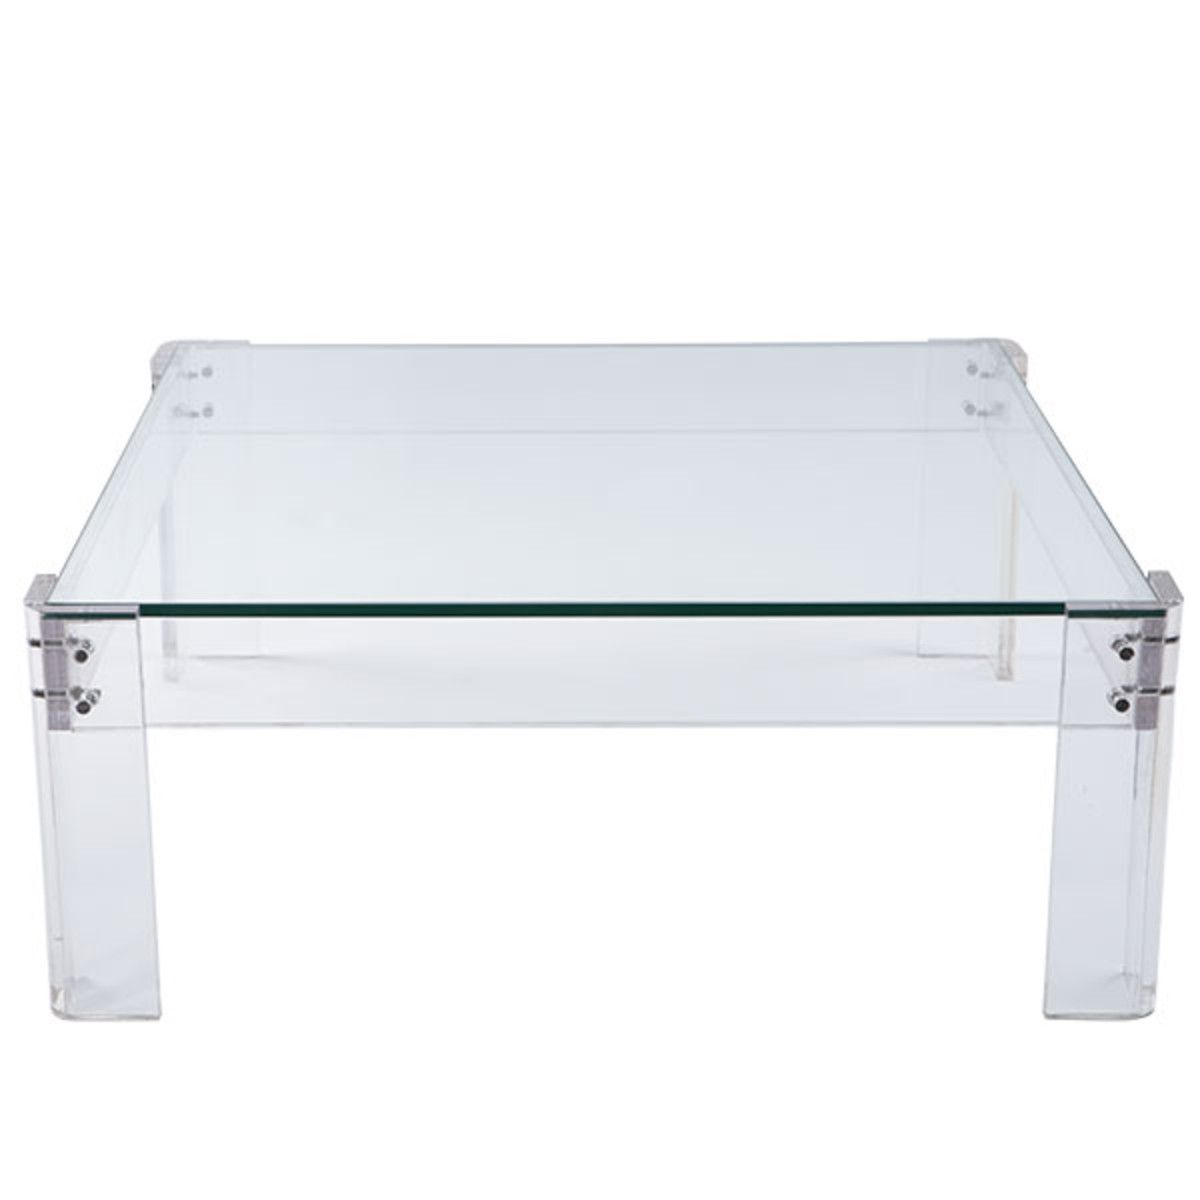 Disappearing Coffee Table Acrylic Table Coffee Table Rectangle Table